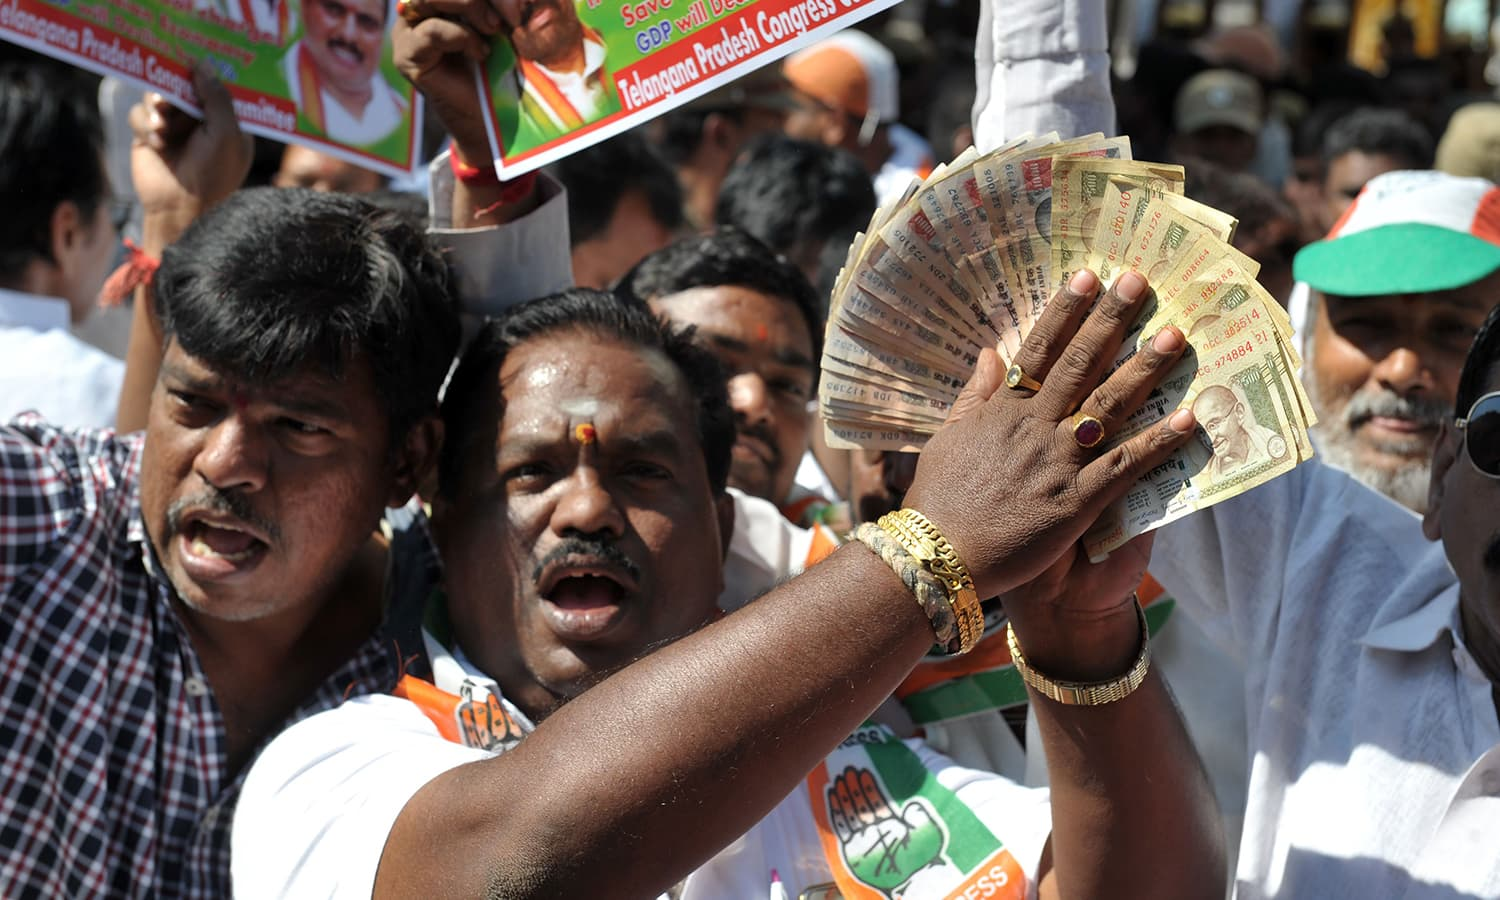 Members of the Congress party hold up the banned 500 and 1000 rupee notes as they shout slogans during a protest as part of 'Jan Aakrosh Diwas' in front of the Reserve Bank of India. ─AFP